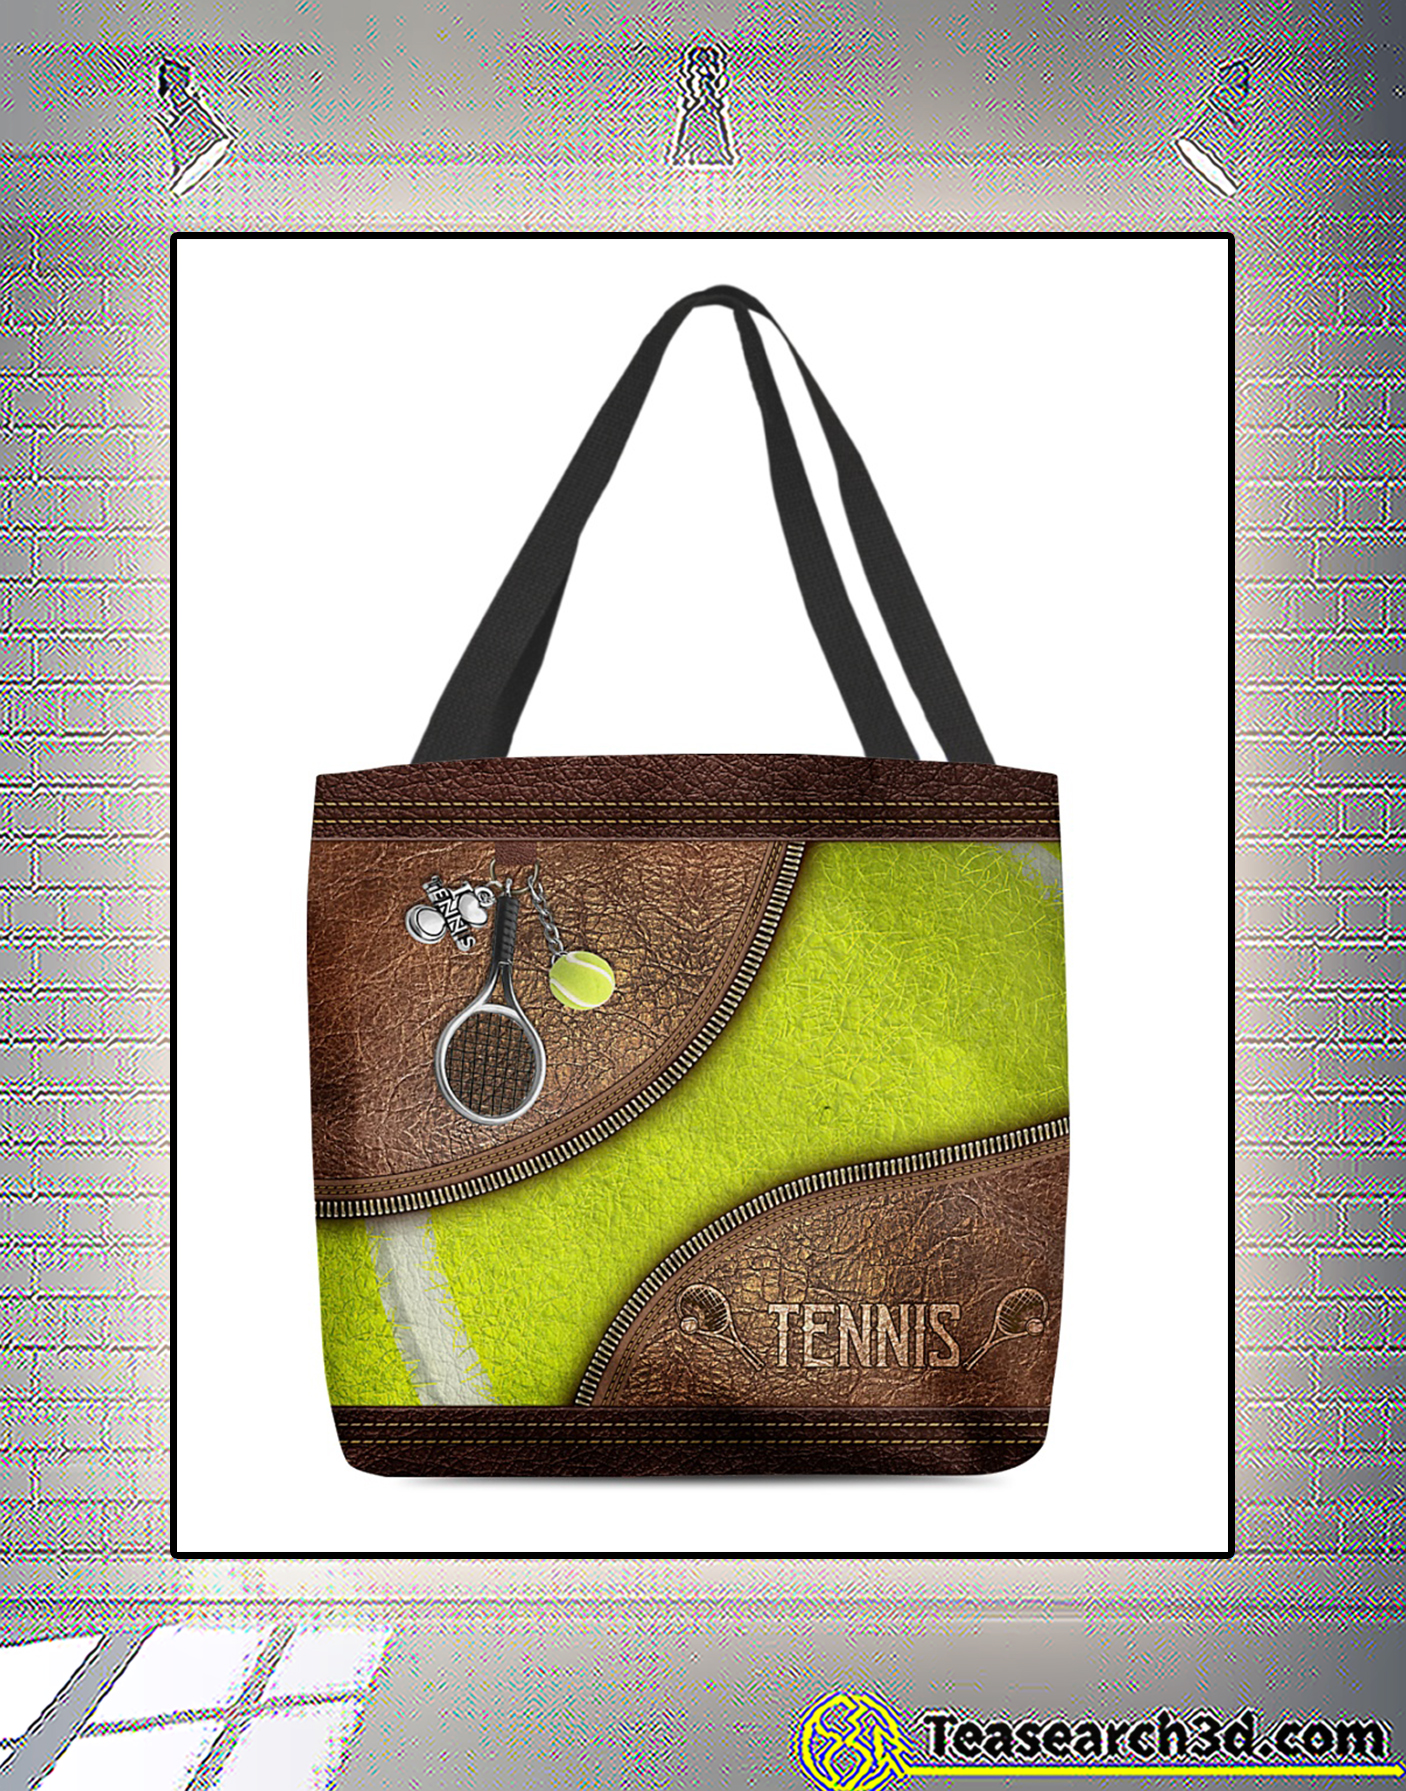 Tennis leather pattern print all-over tote bag